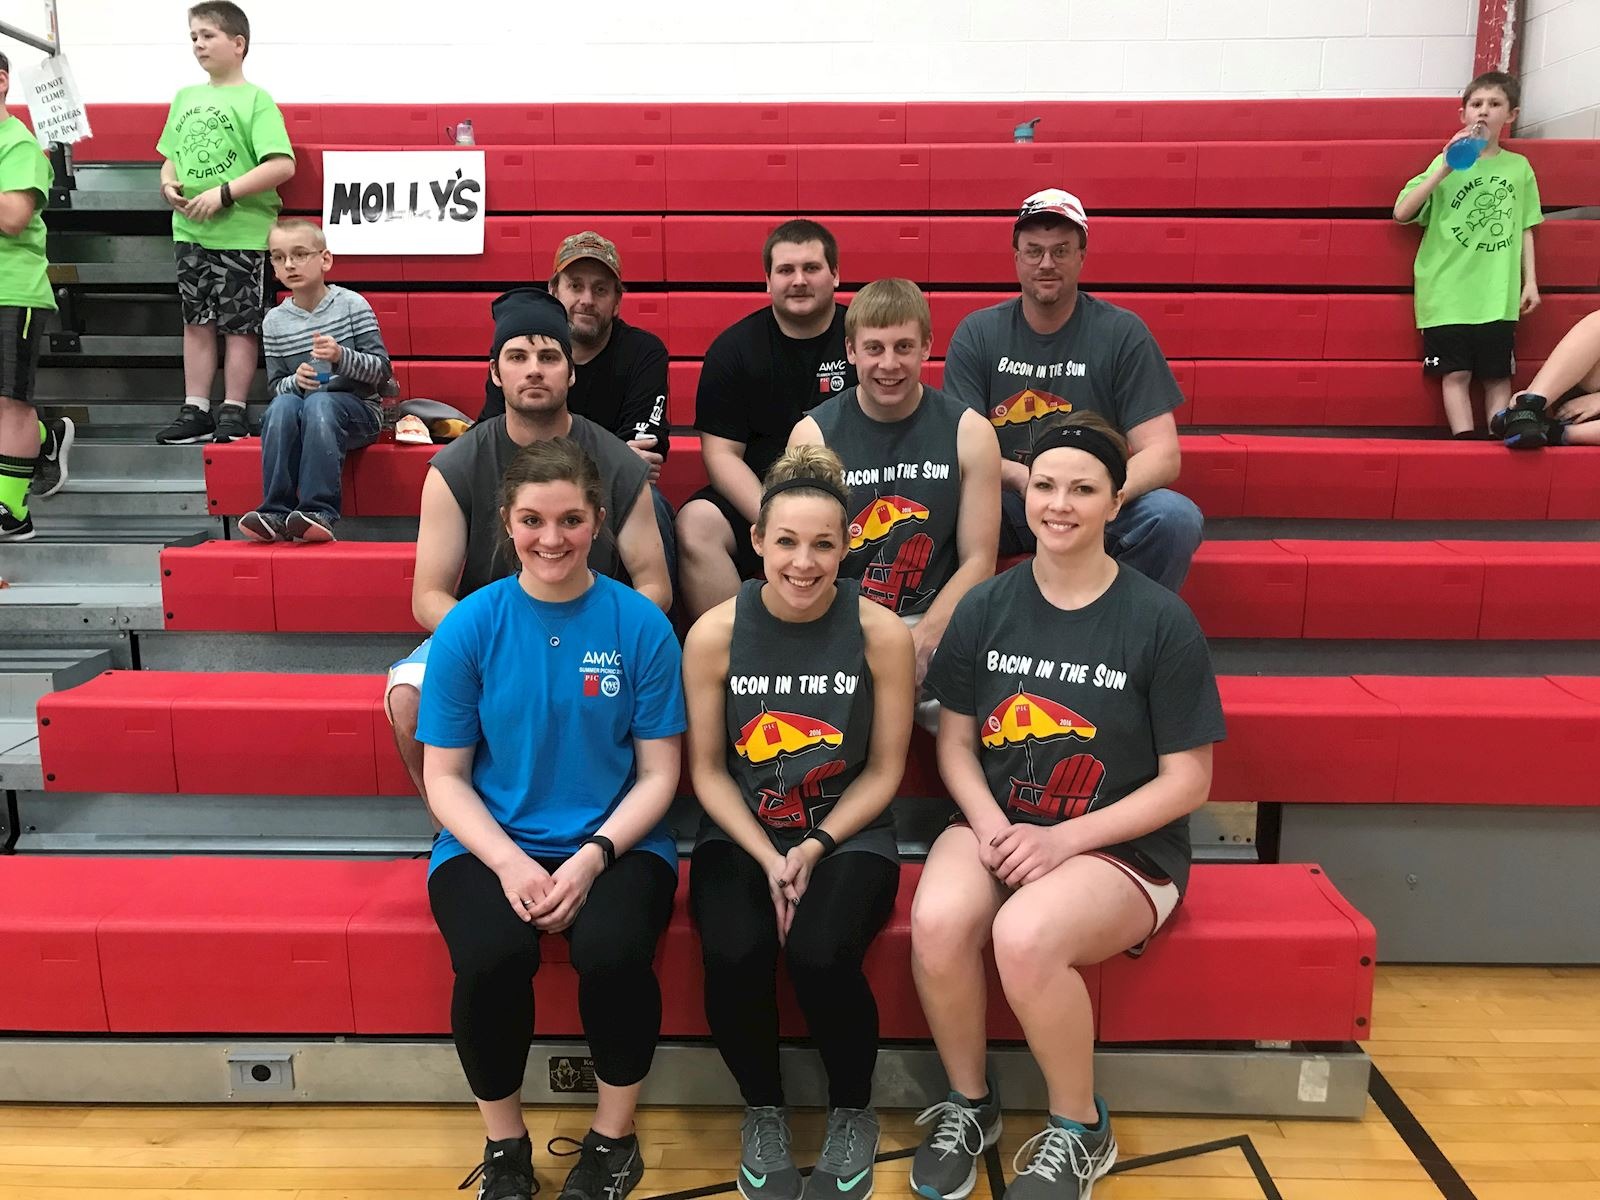 AMVC participates in charity dodgeball tournament